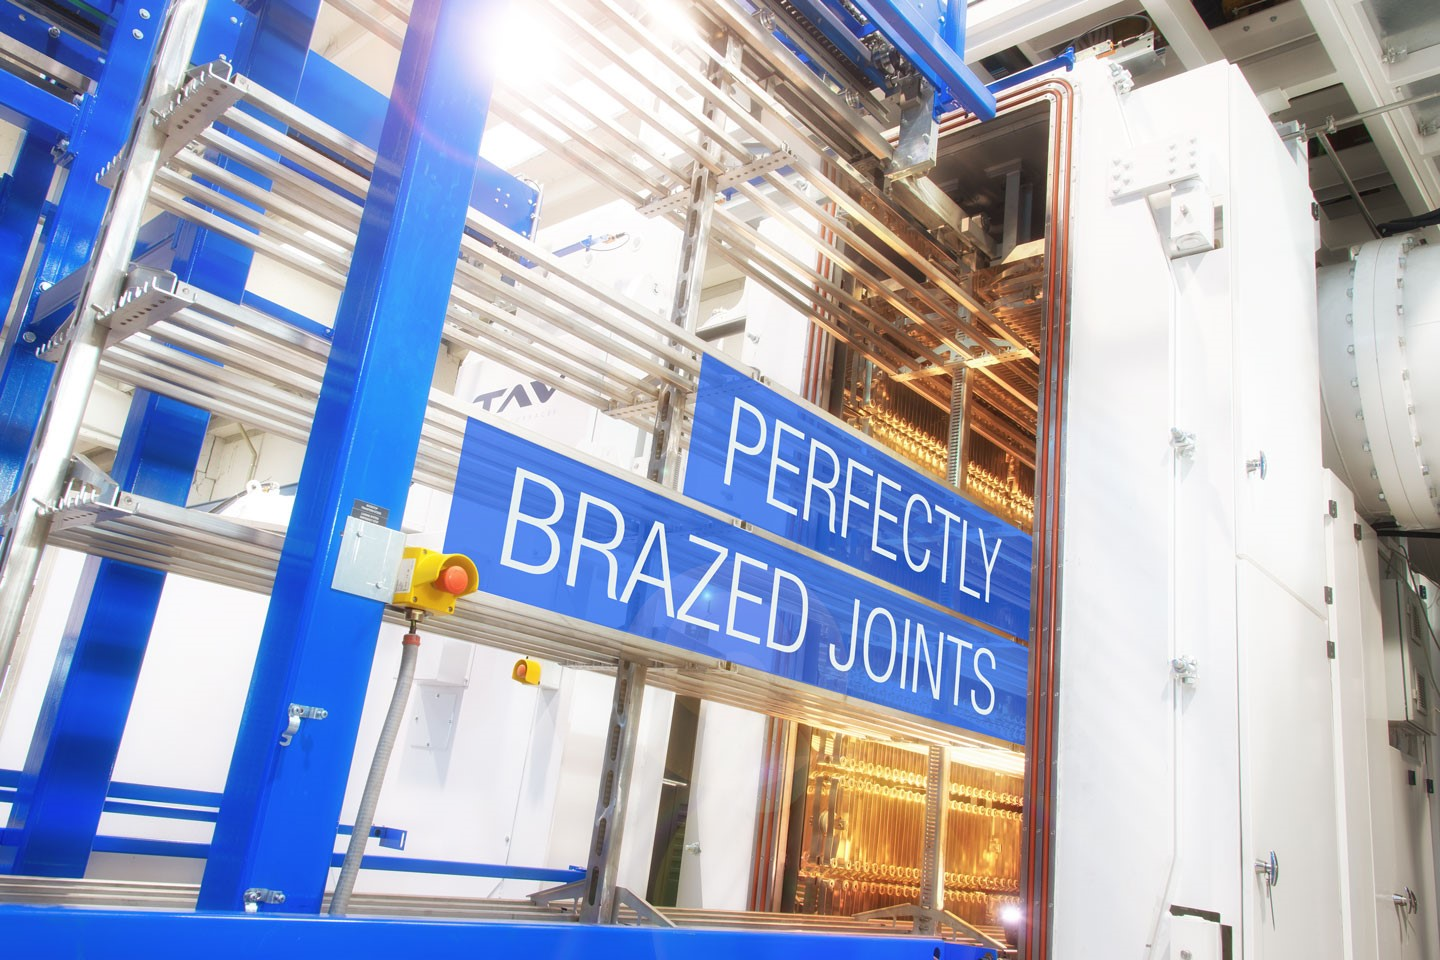 Vacuum brazing: the guide to perfect brazed joints